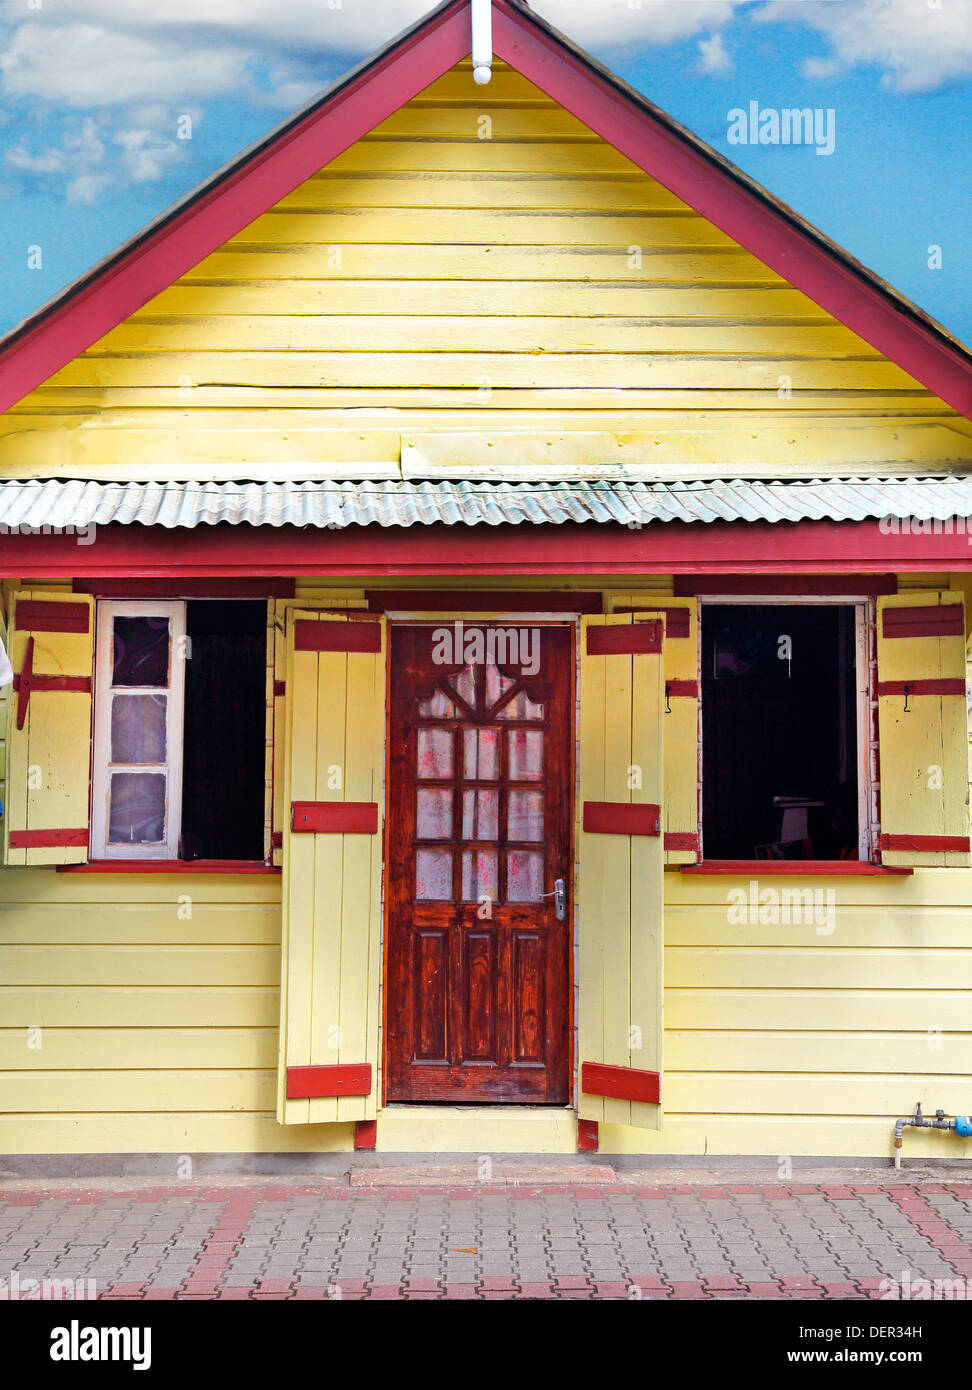 STREETSCENE ,CASTRIES,ST.LUCIA,WEST INDIES,CARIBBEAN - Stock Image